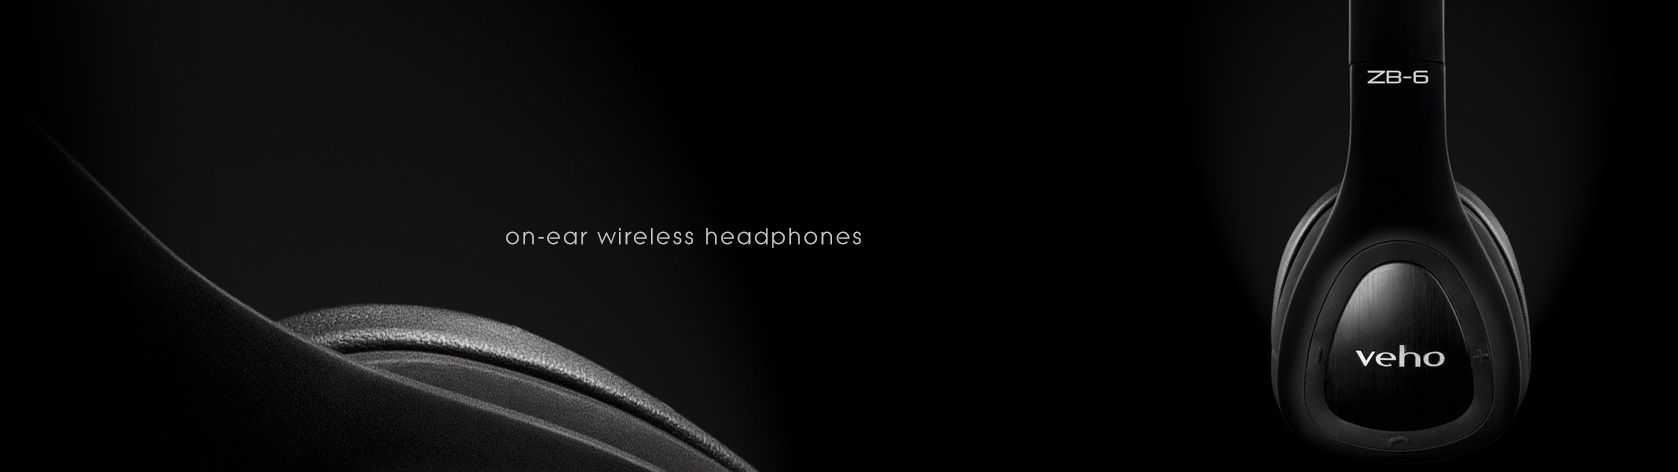 On-Ear Wireless